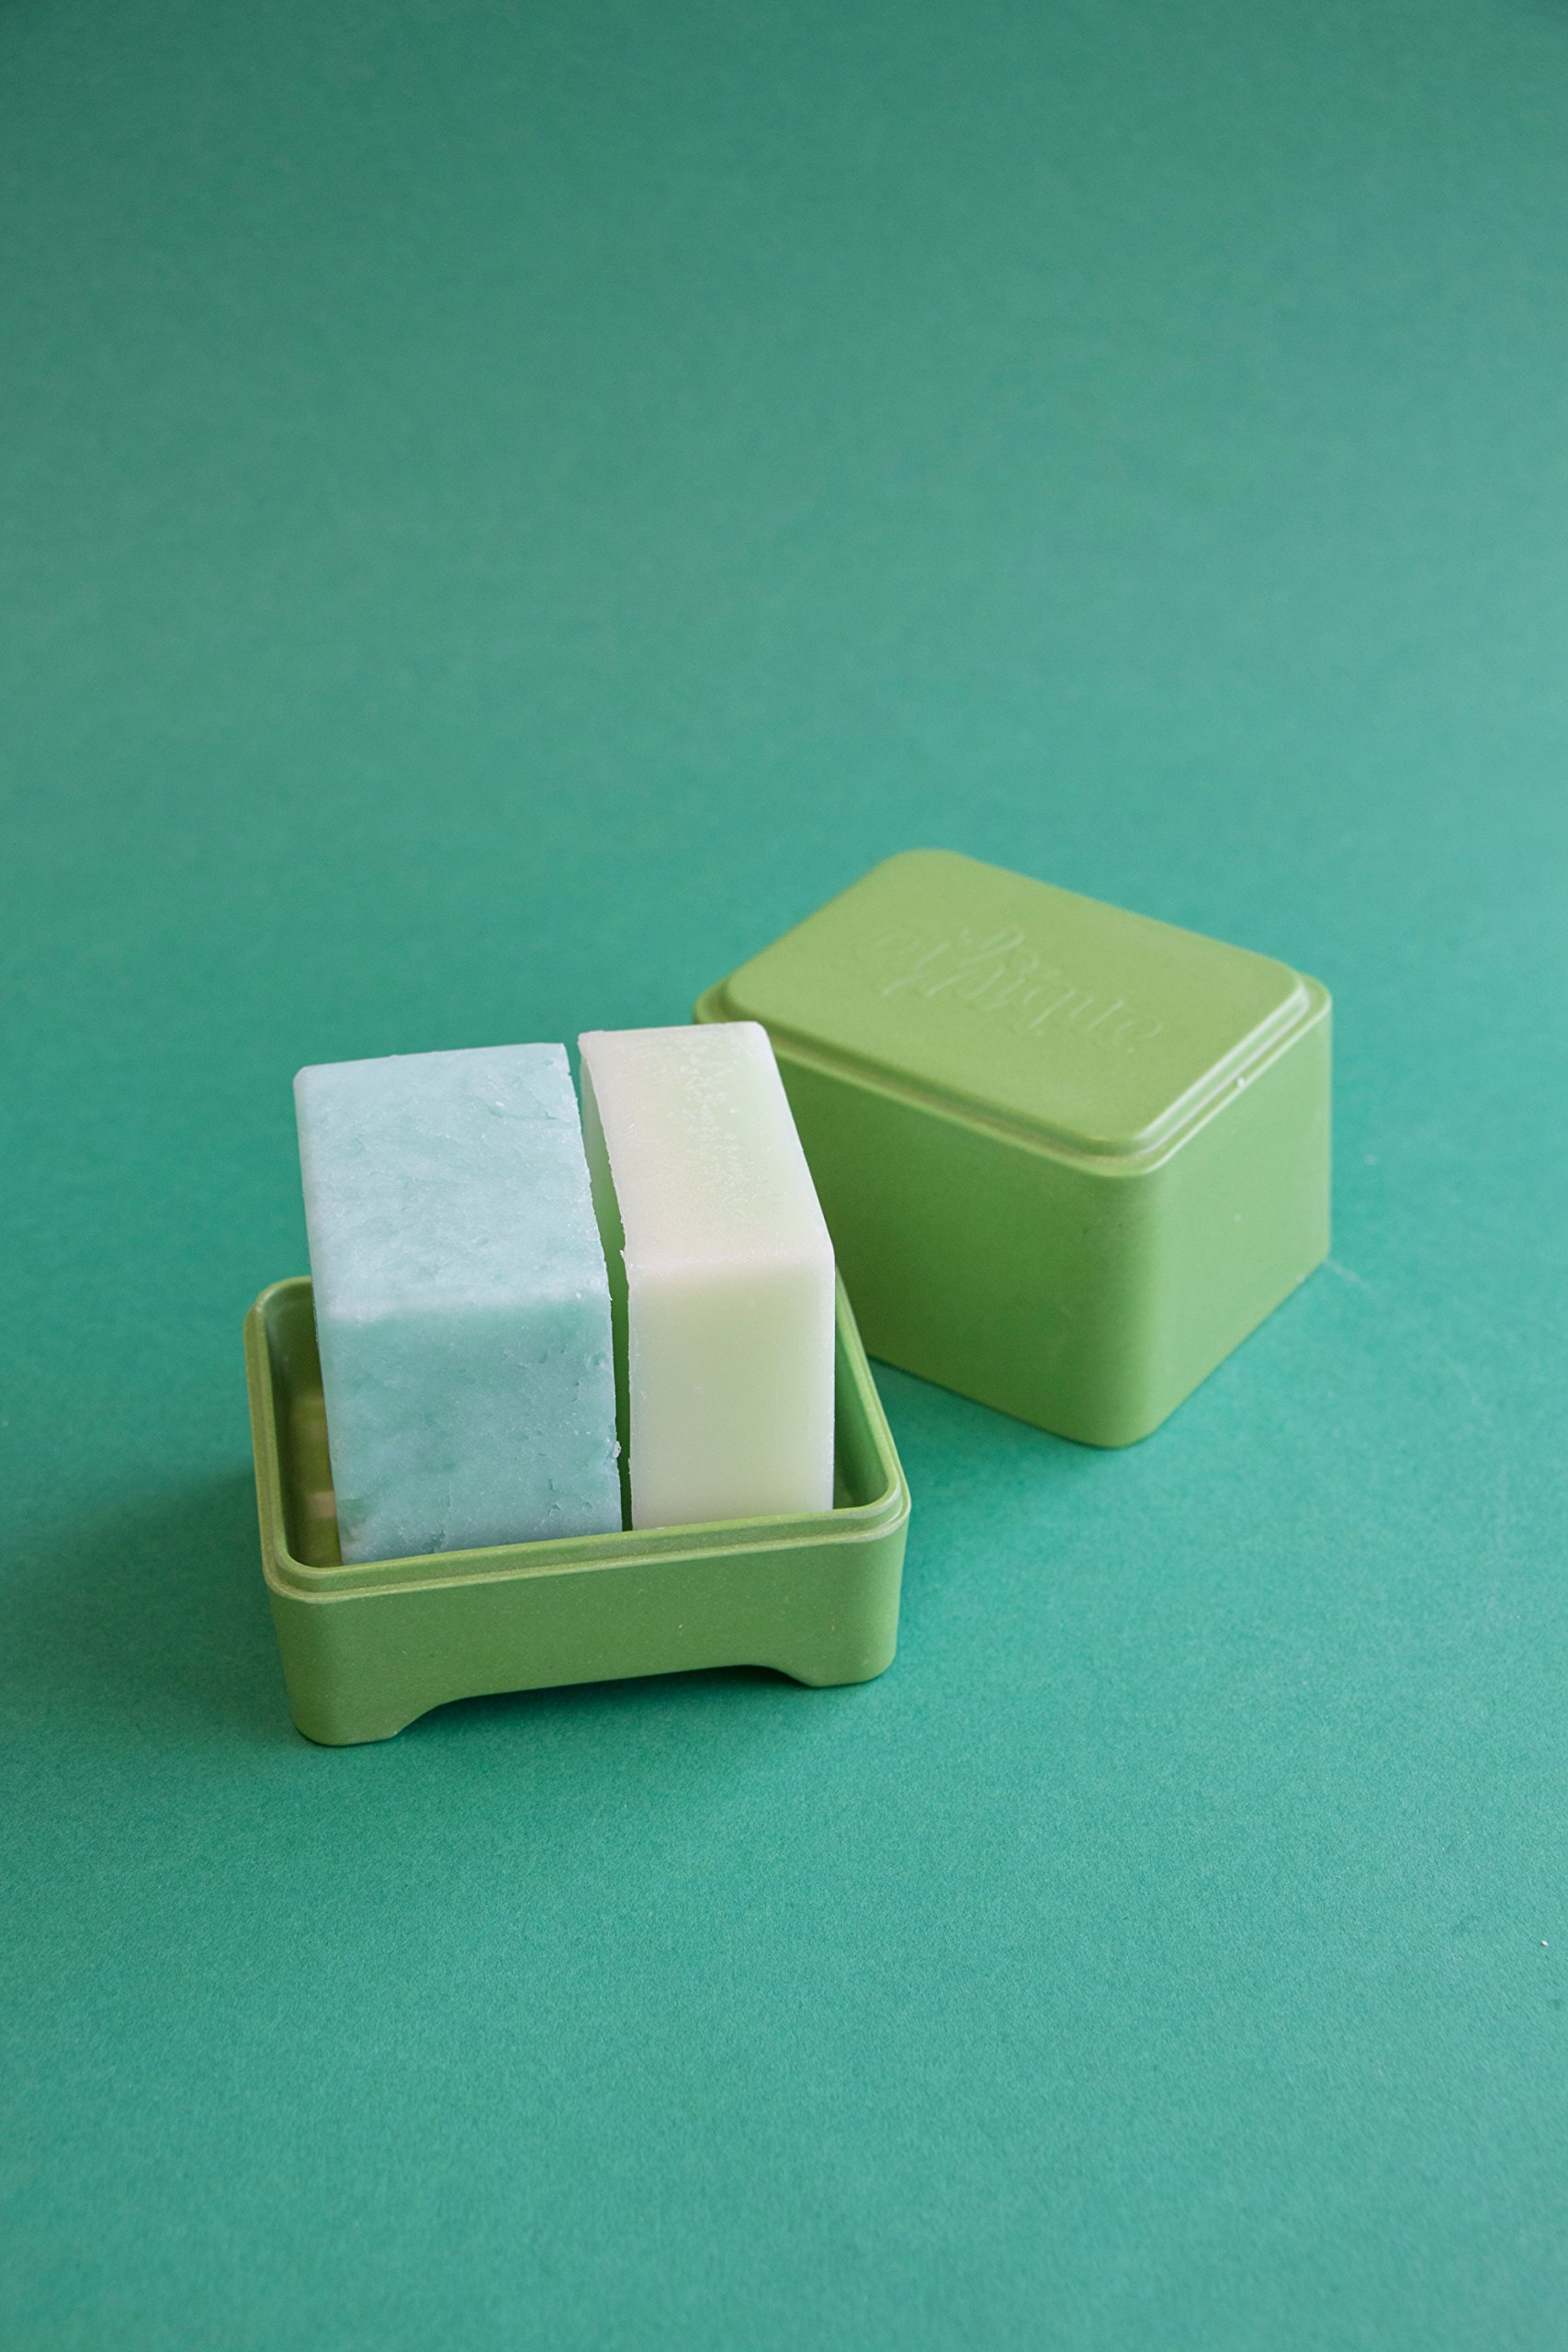 Ethique In Shower Container Green by Ethique (Image #5)